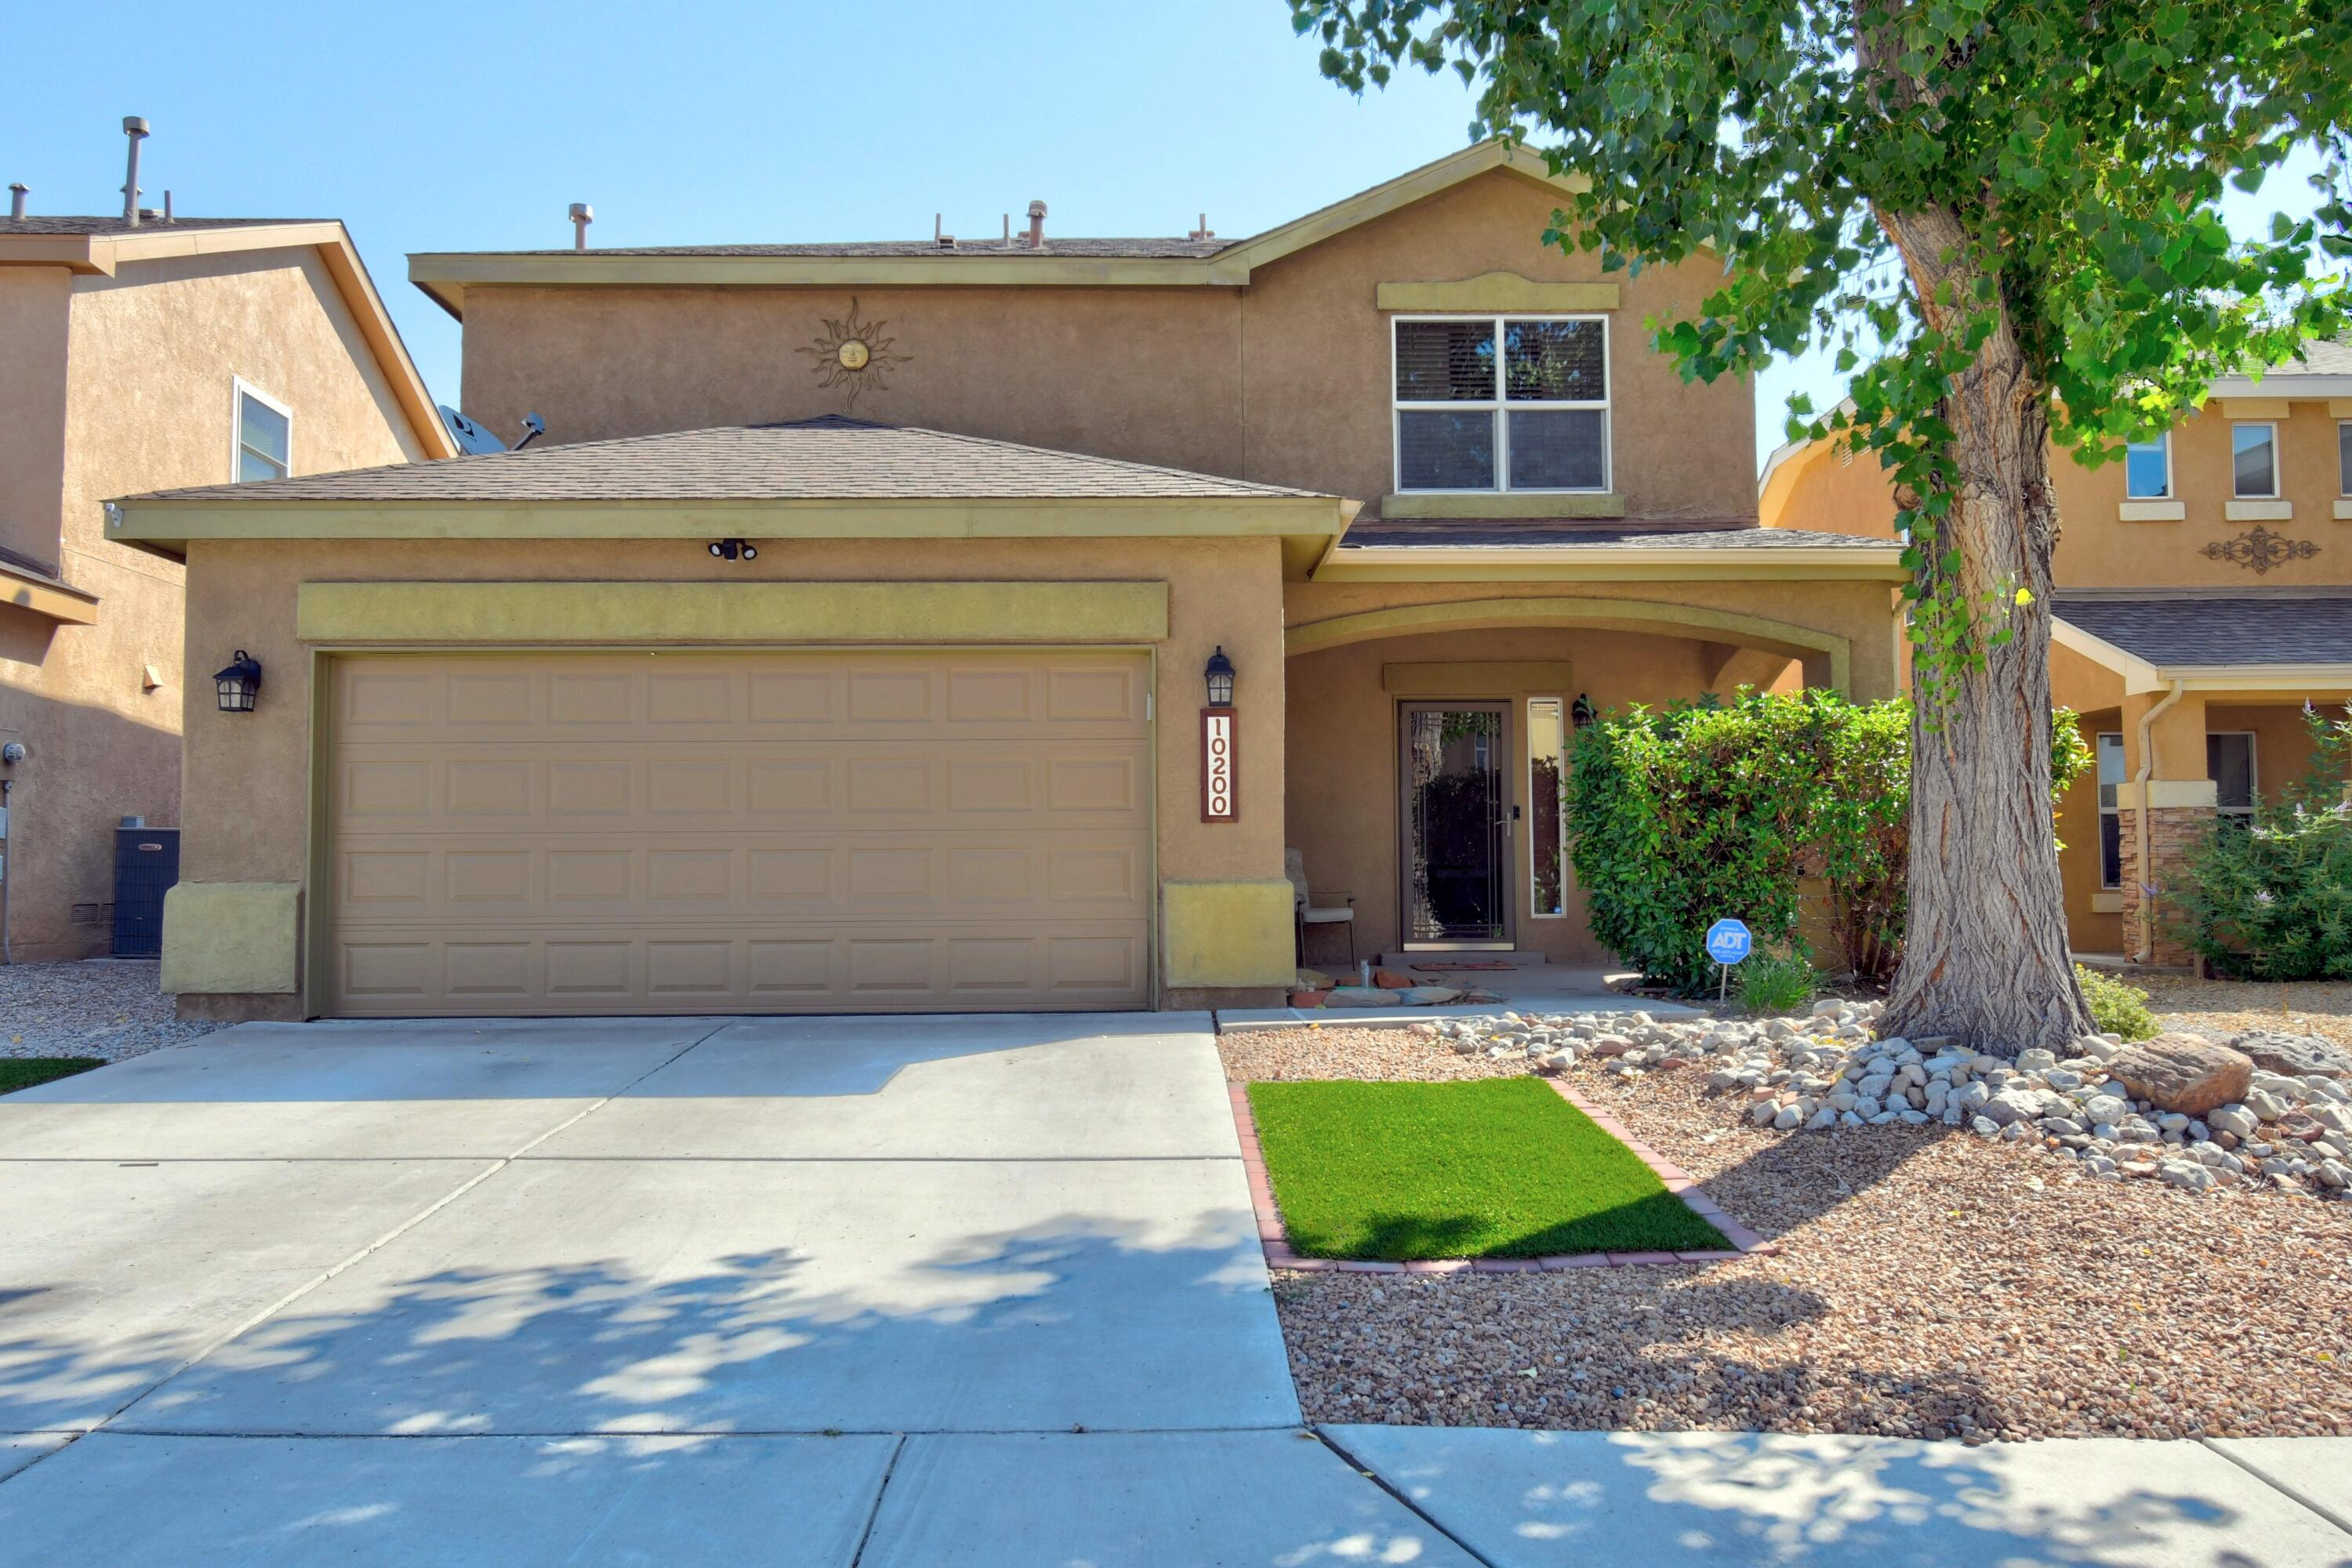 Welcome Home to this move-in ready Pulte.  Well cared for home with open floorplan for entertaining or sharing time with your family.  Low maintenance landscape complete with turf.  The master suite includes walk in closet with garden tub and double sinks.  The master also boasts amazing views of the Sandias.  Two guests bedrooms and laundry complete the upstairs.